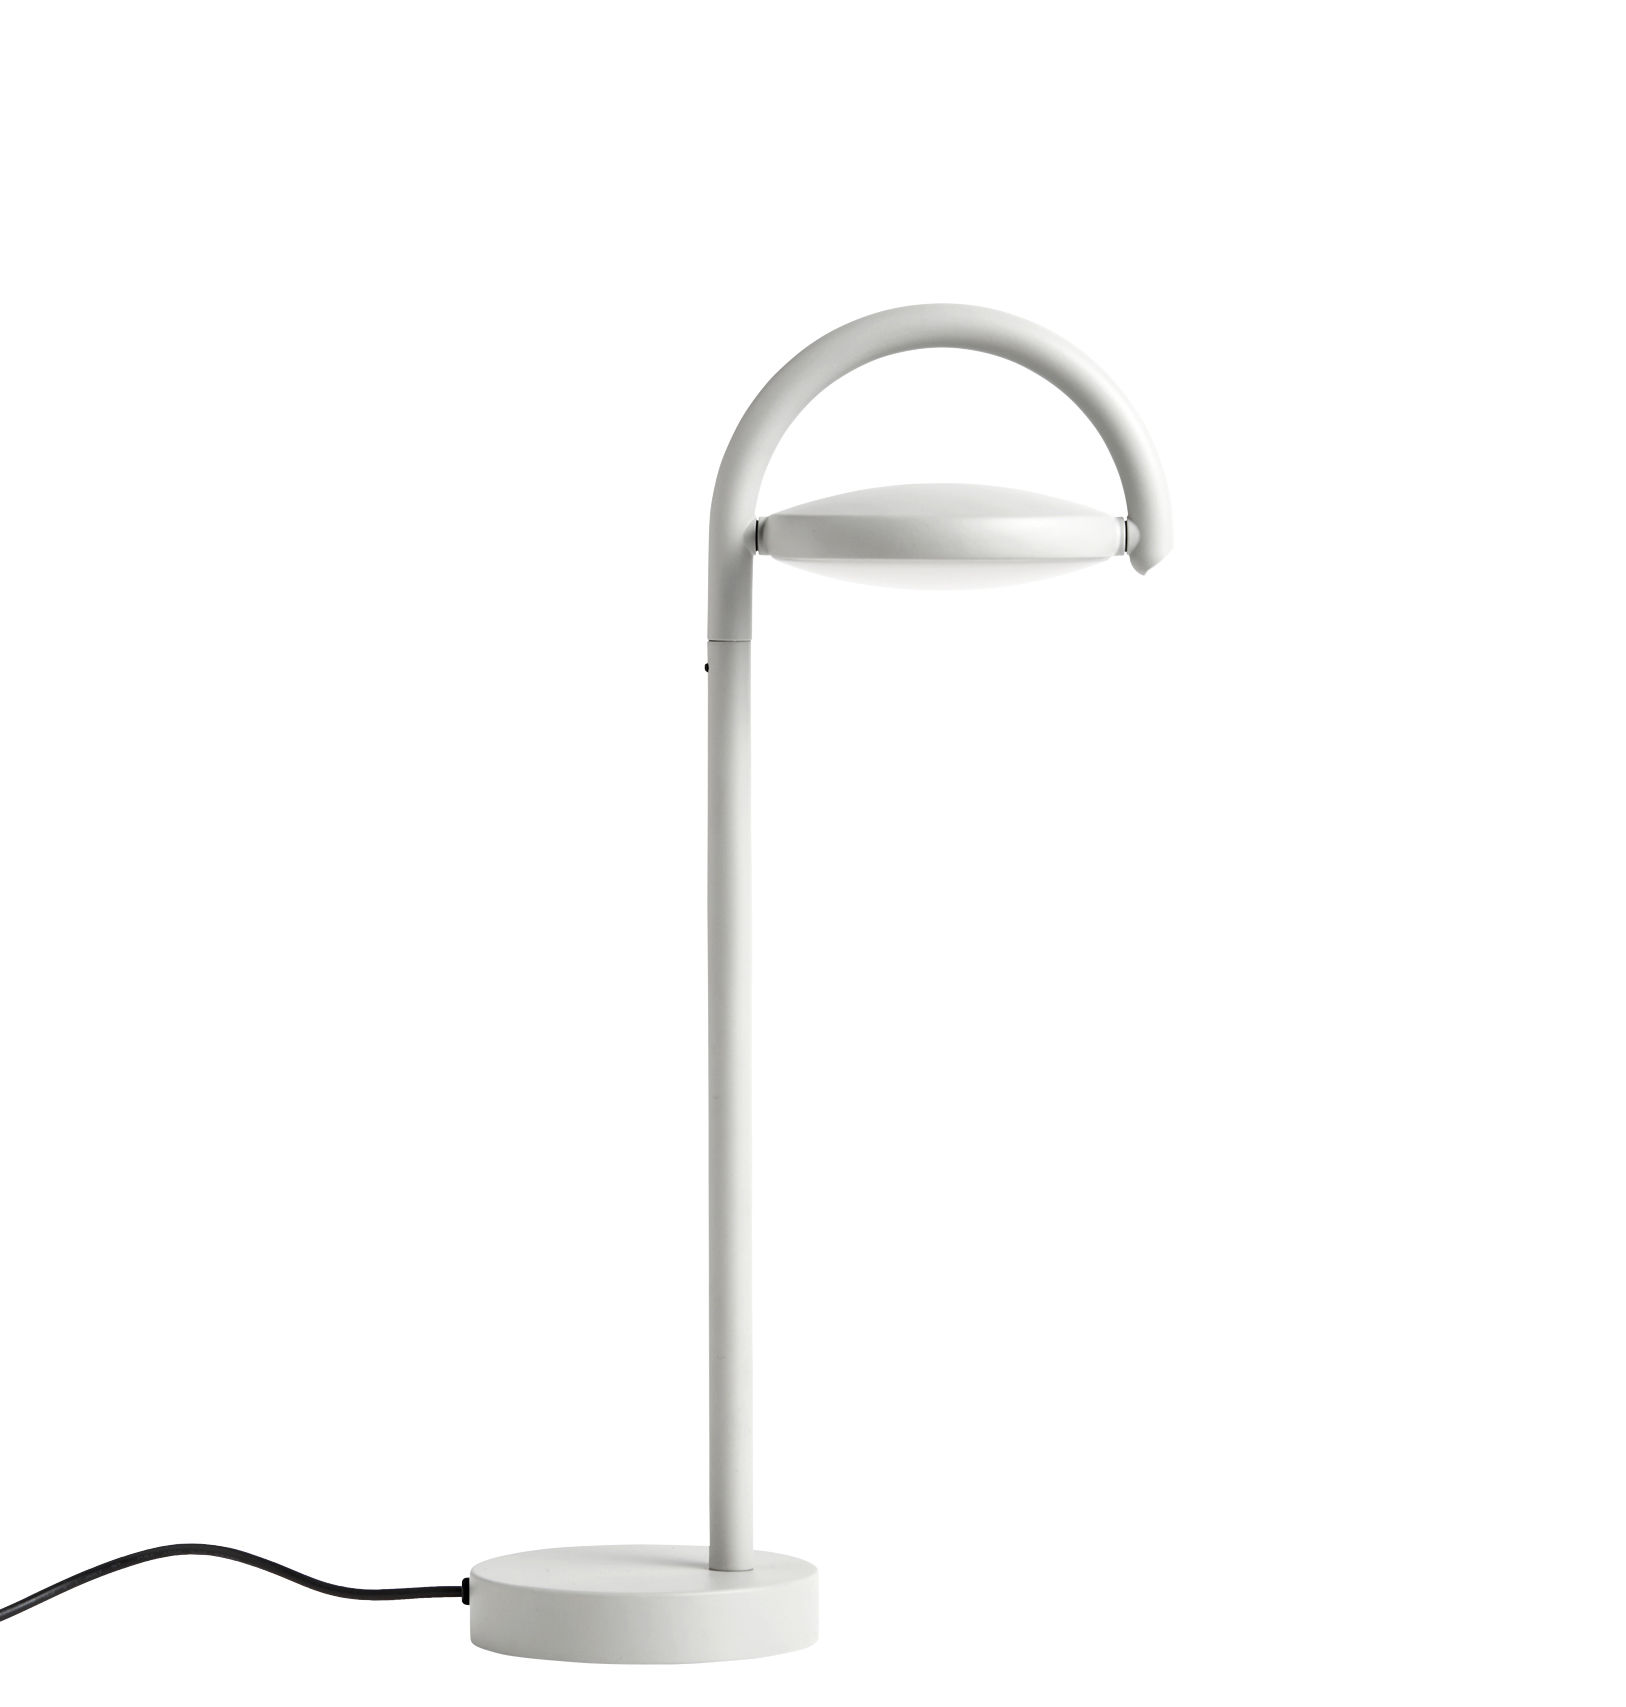 Hay Lamp Marselis Table Lamp Adjustable Diffuser H 38 Cm By Hay